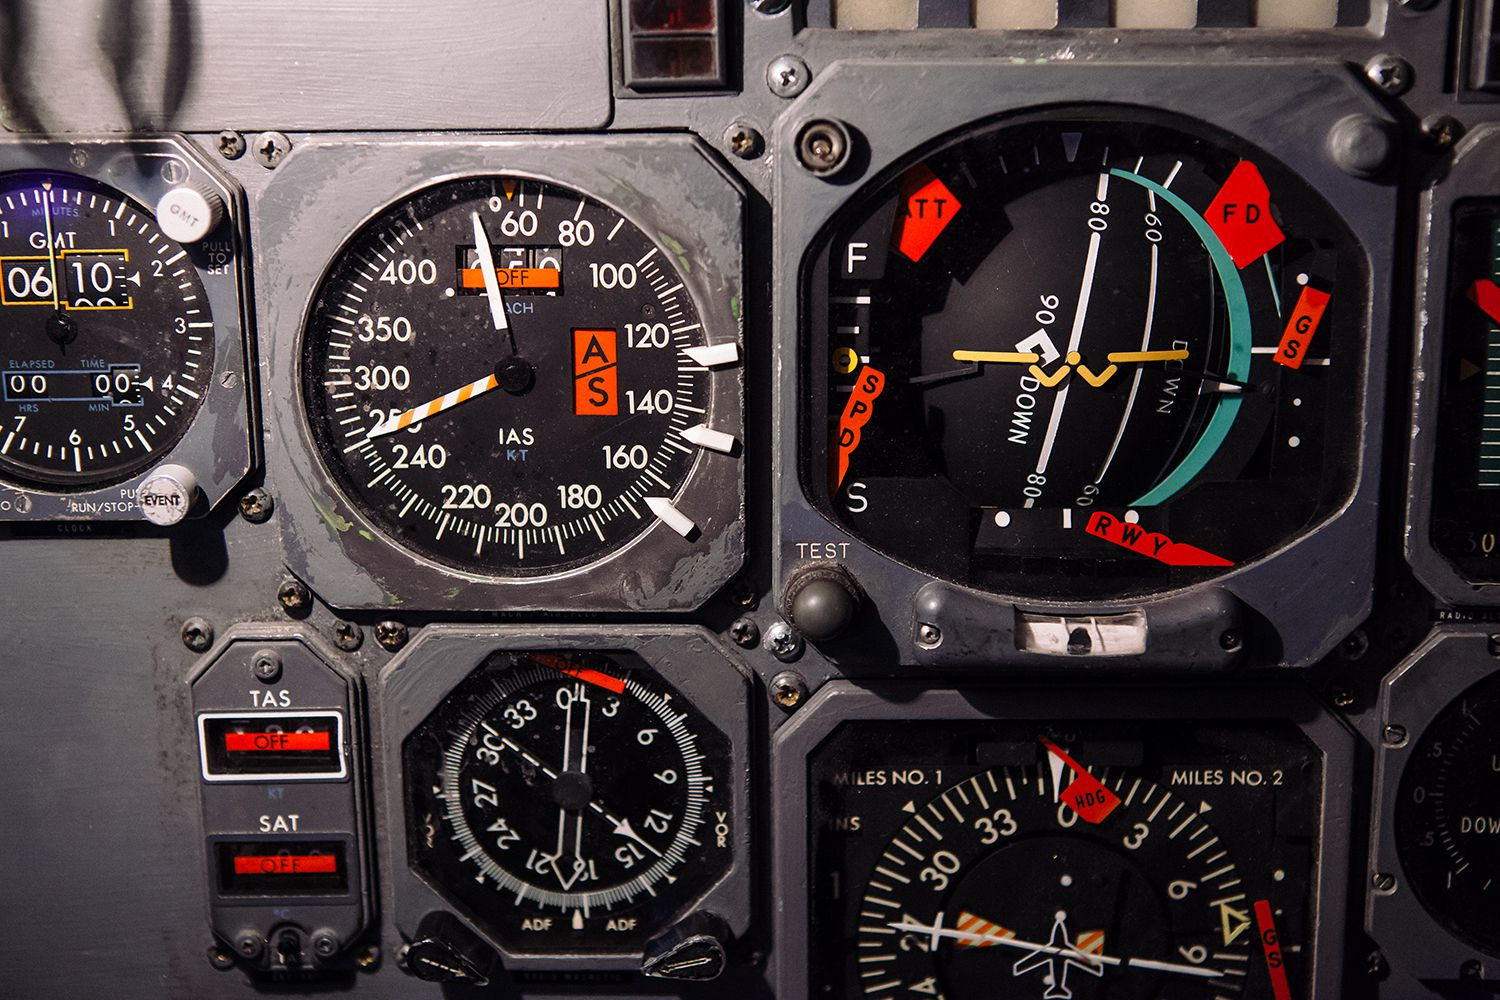 Wondrous Basic Flight Instruments The Altimeter Wiring Cloud Hisonuggs Outletorg